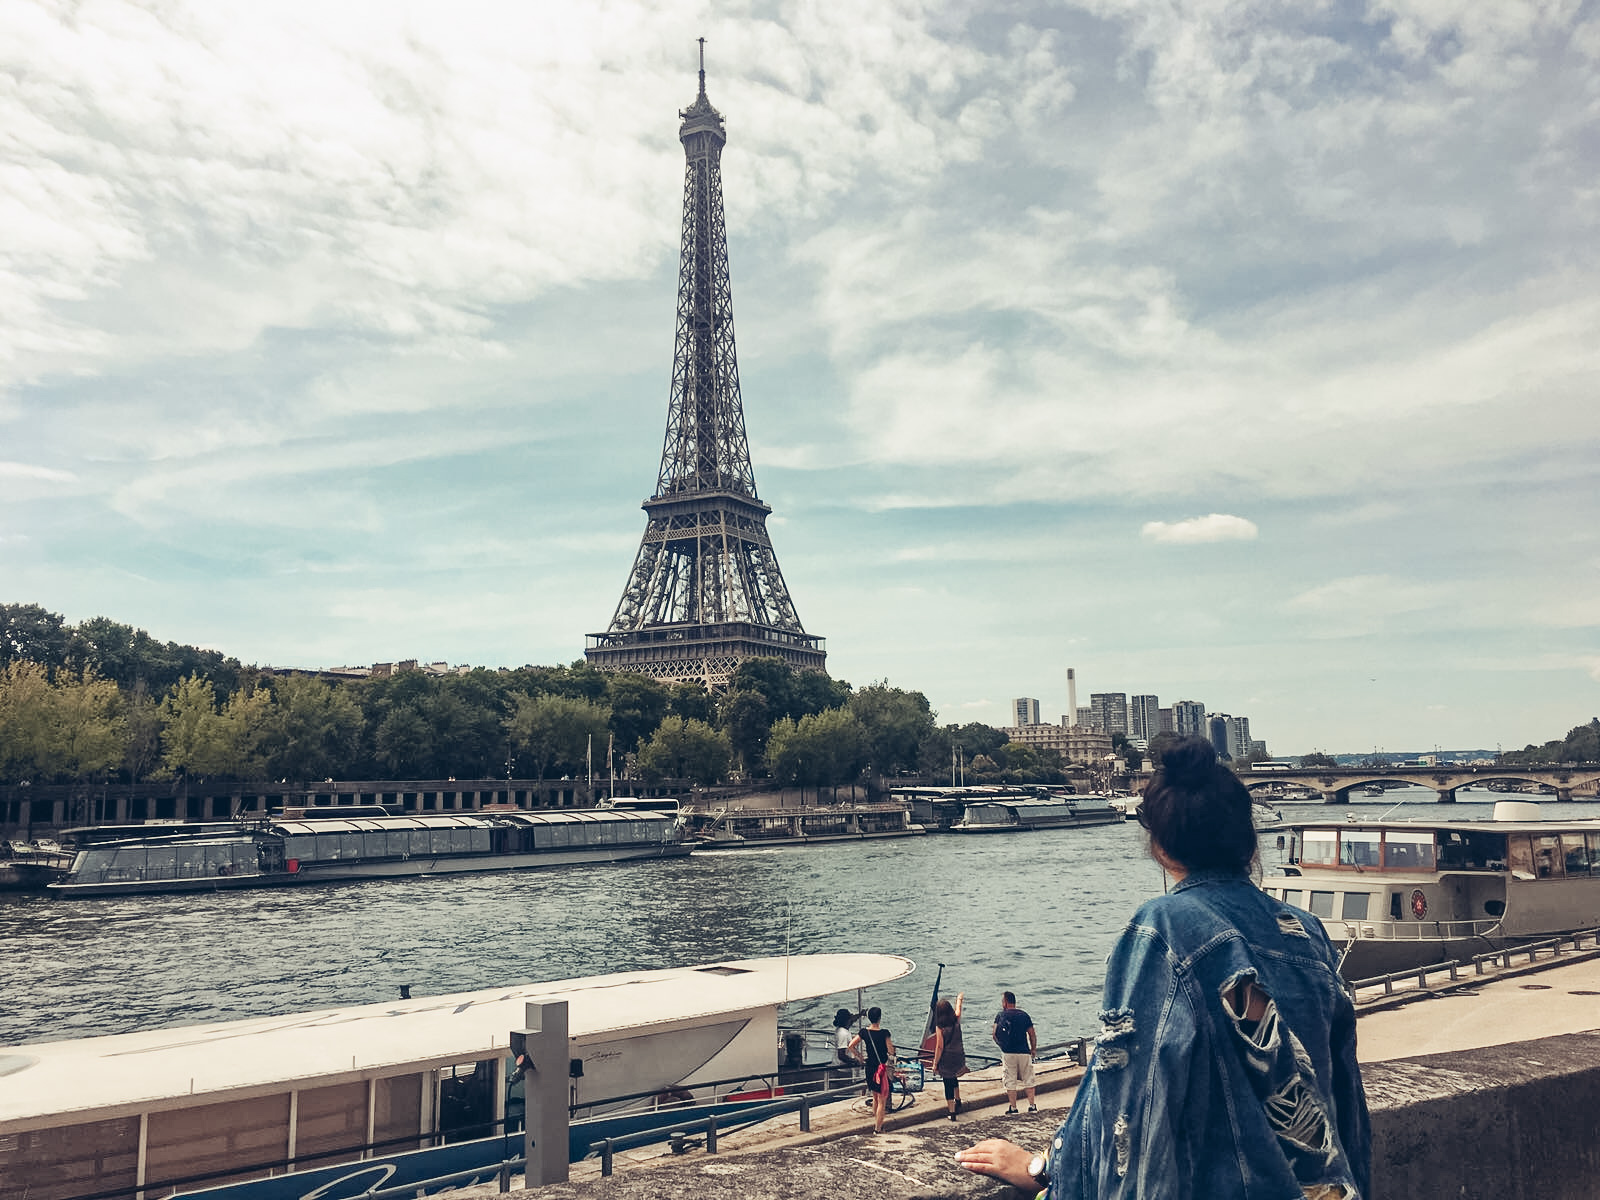 Best Photo Spots in Paris